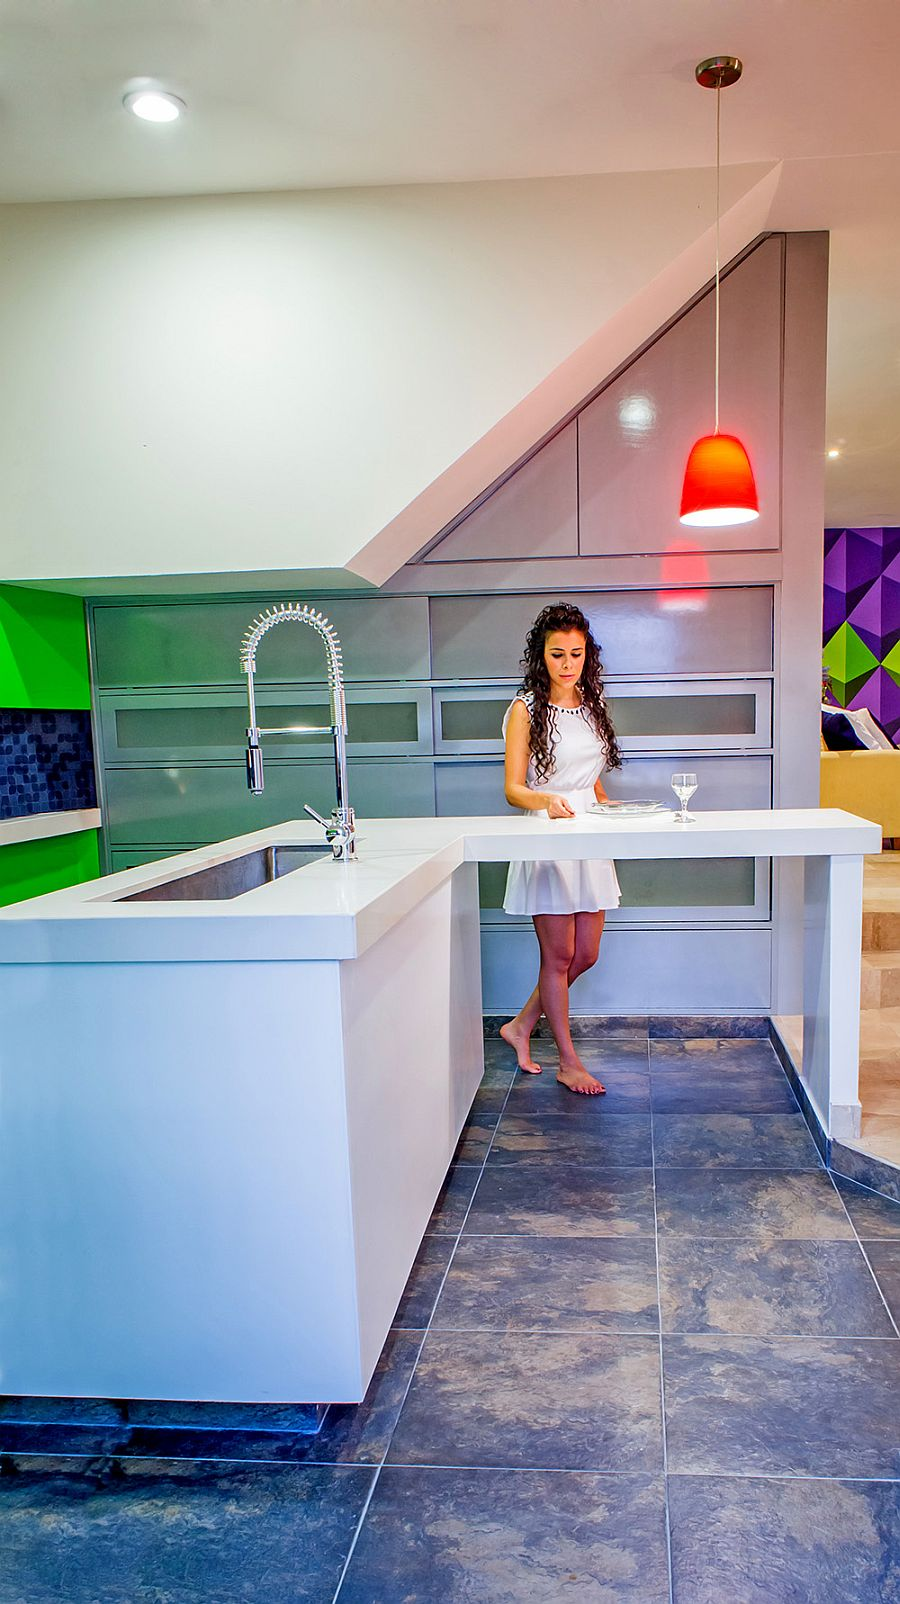 Fabulous contemporary kitchen in white with a colorful backdrop